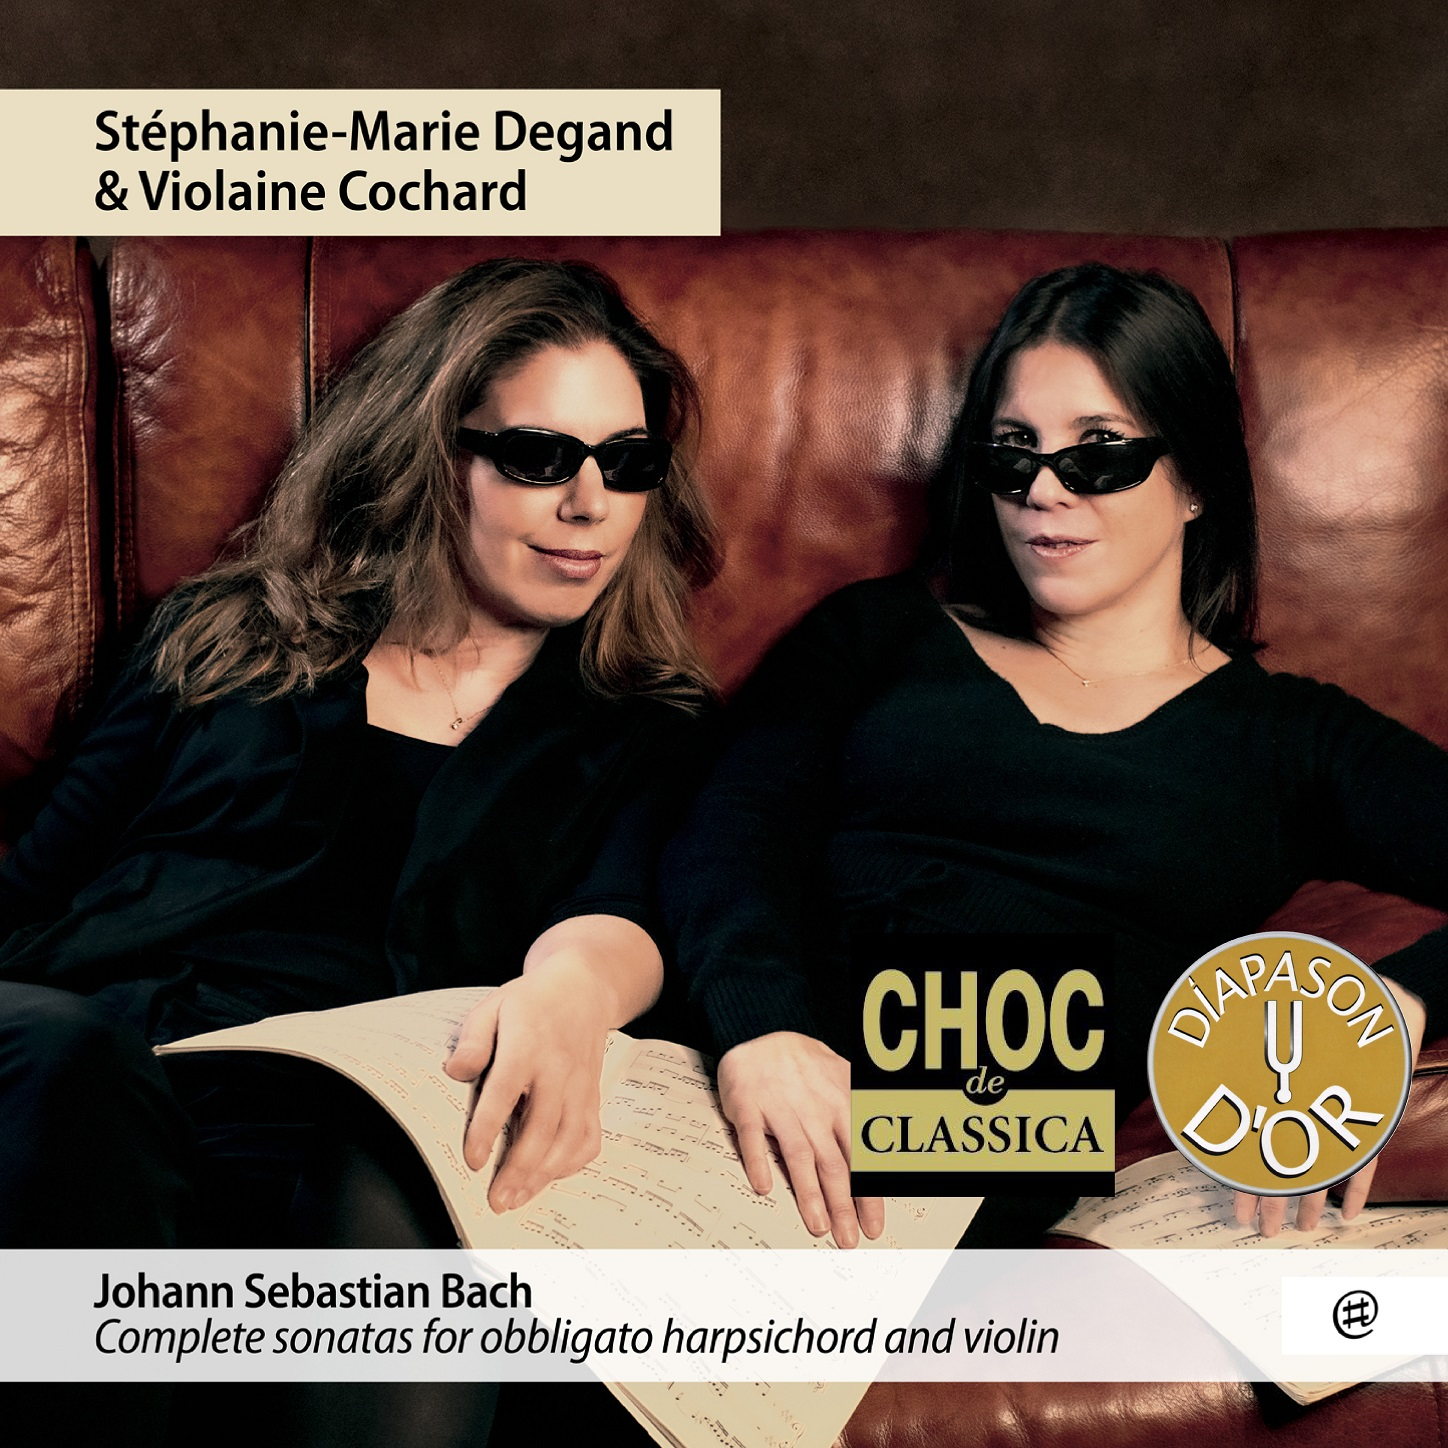 Complete sonatas for obbligato harpsichord and violin - Stéphanie-Marie Degand, Violaine Cochard